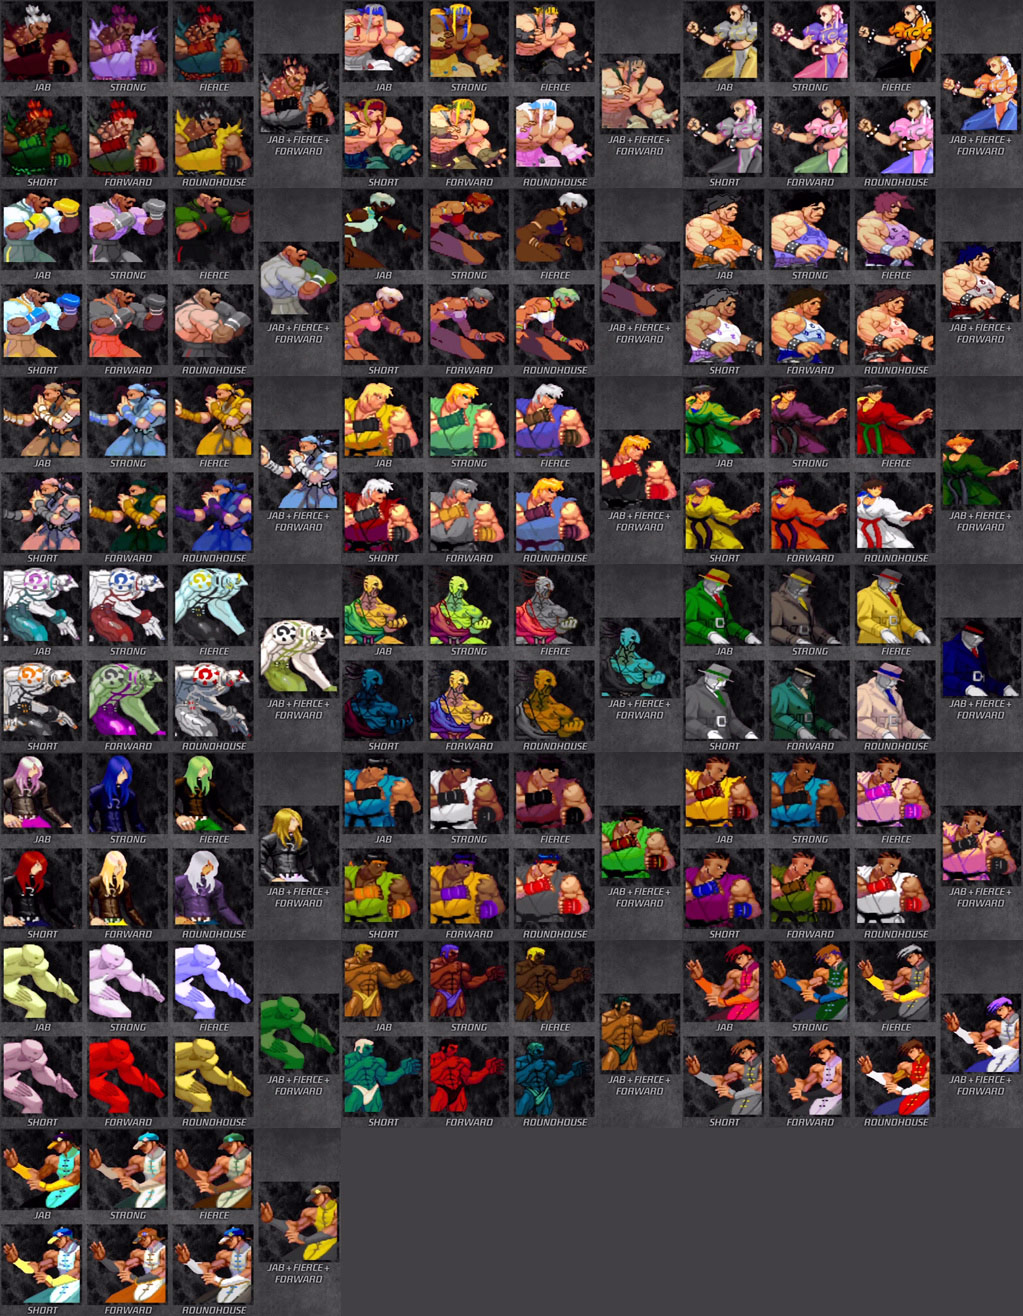 Street Fighter 3 Third Strike Online Edition DLC color pack